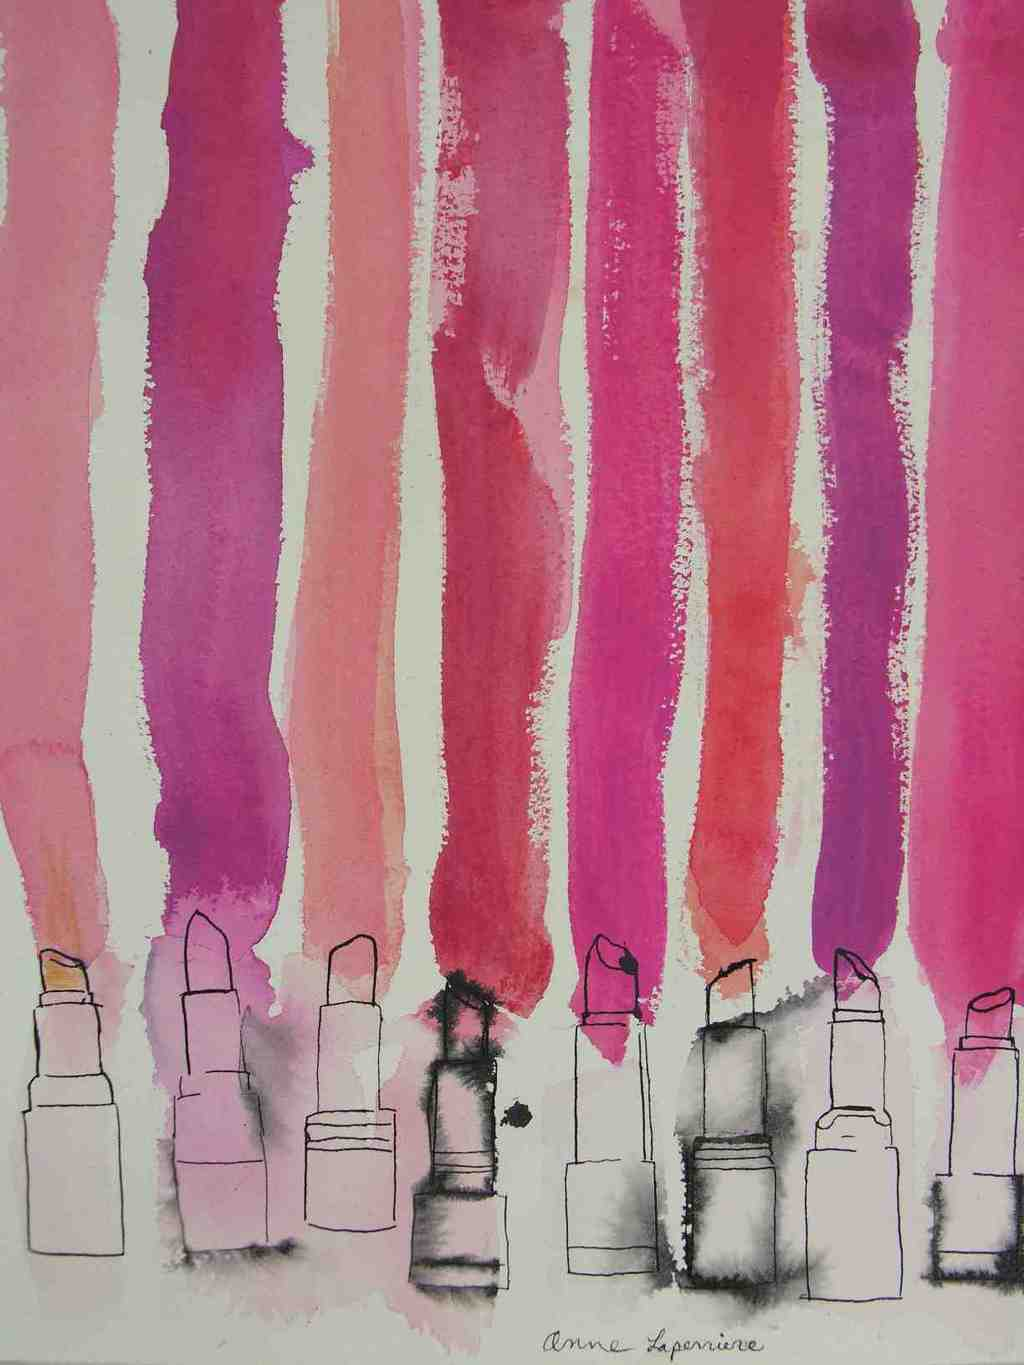 Anne Laperriere Artwork Lipstick Stripes Original